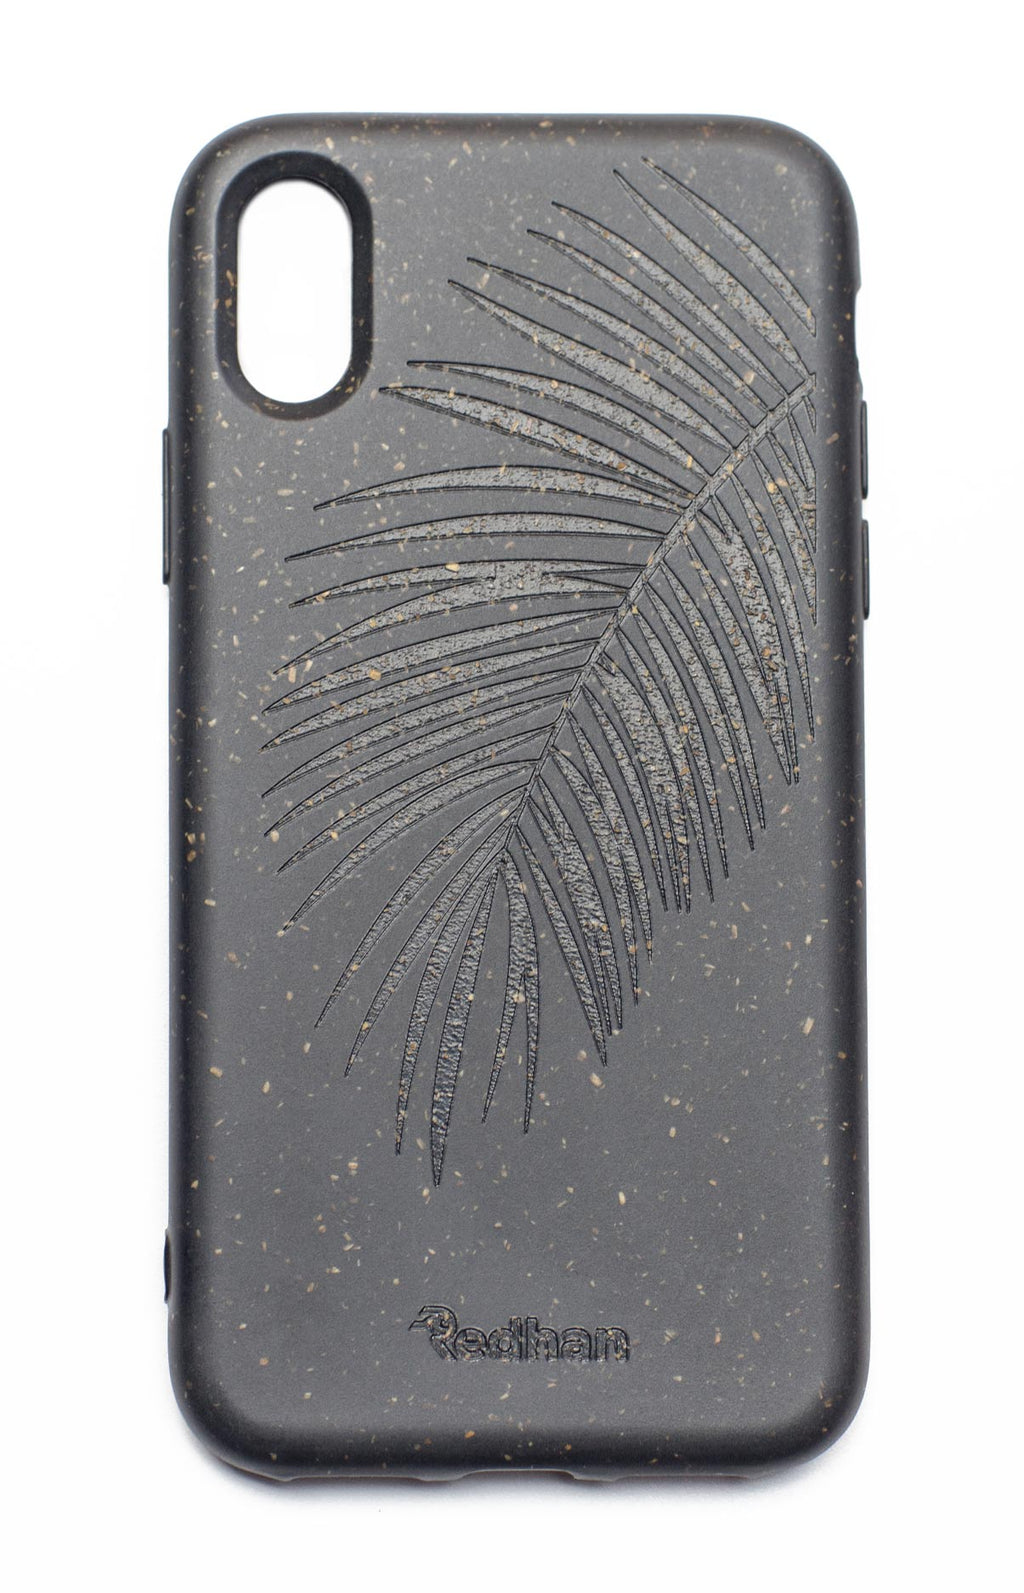 Eco-Friendly Phone Case Black, iPhone XS Max Phone case in Black